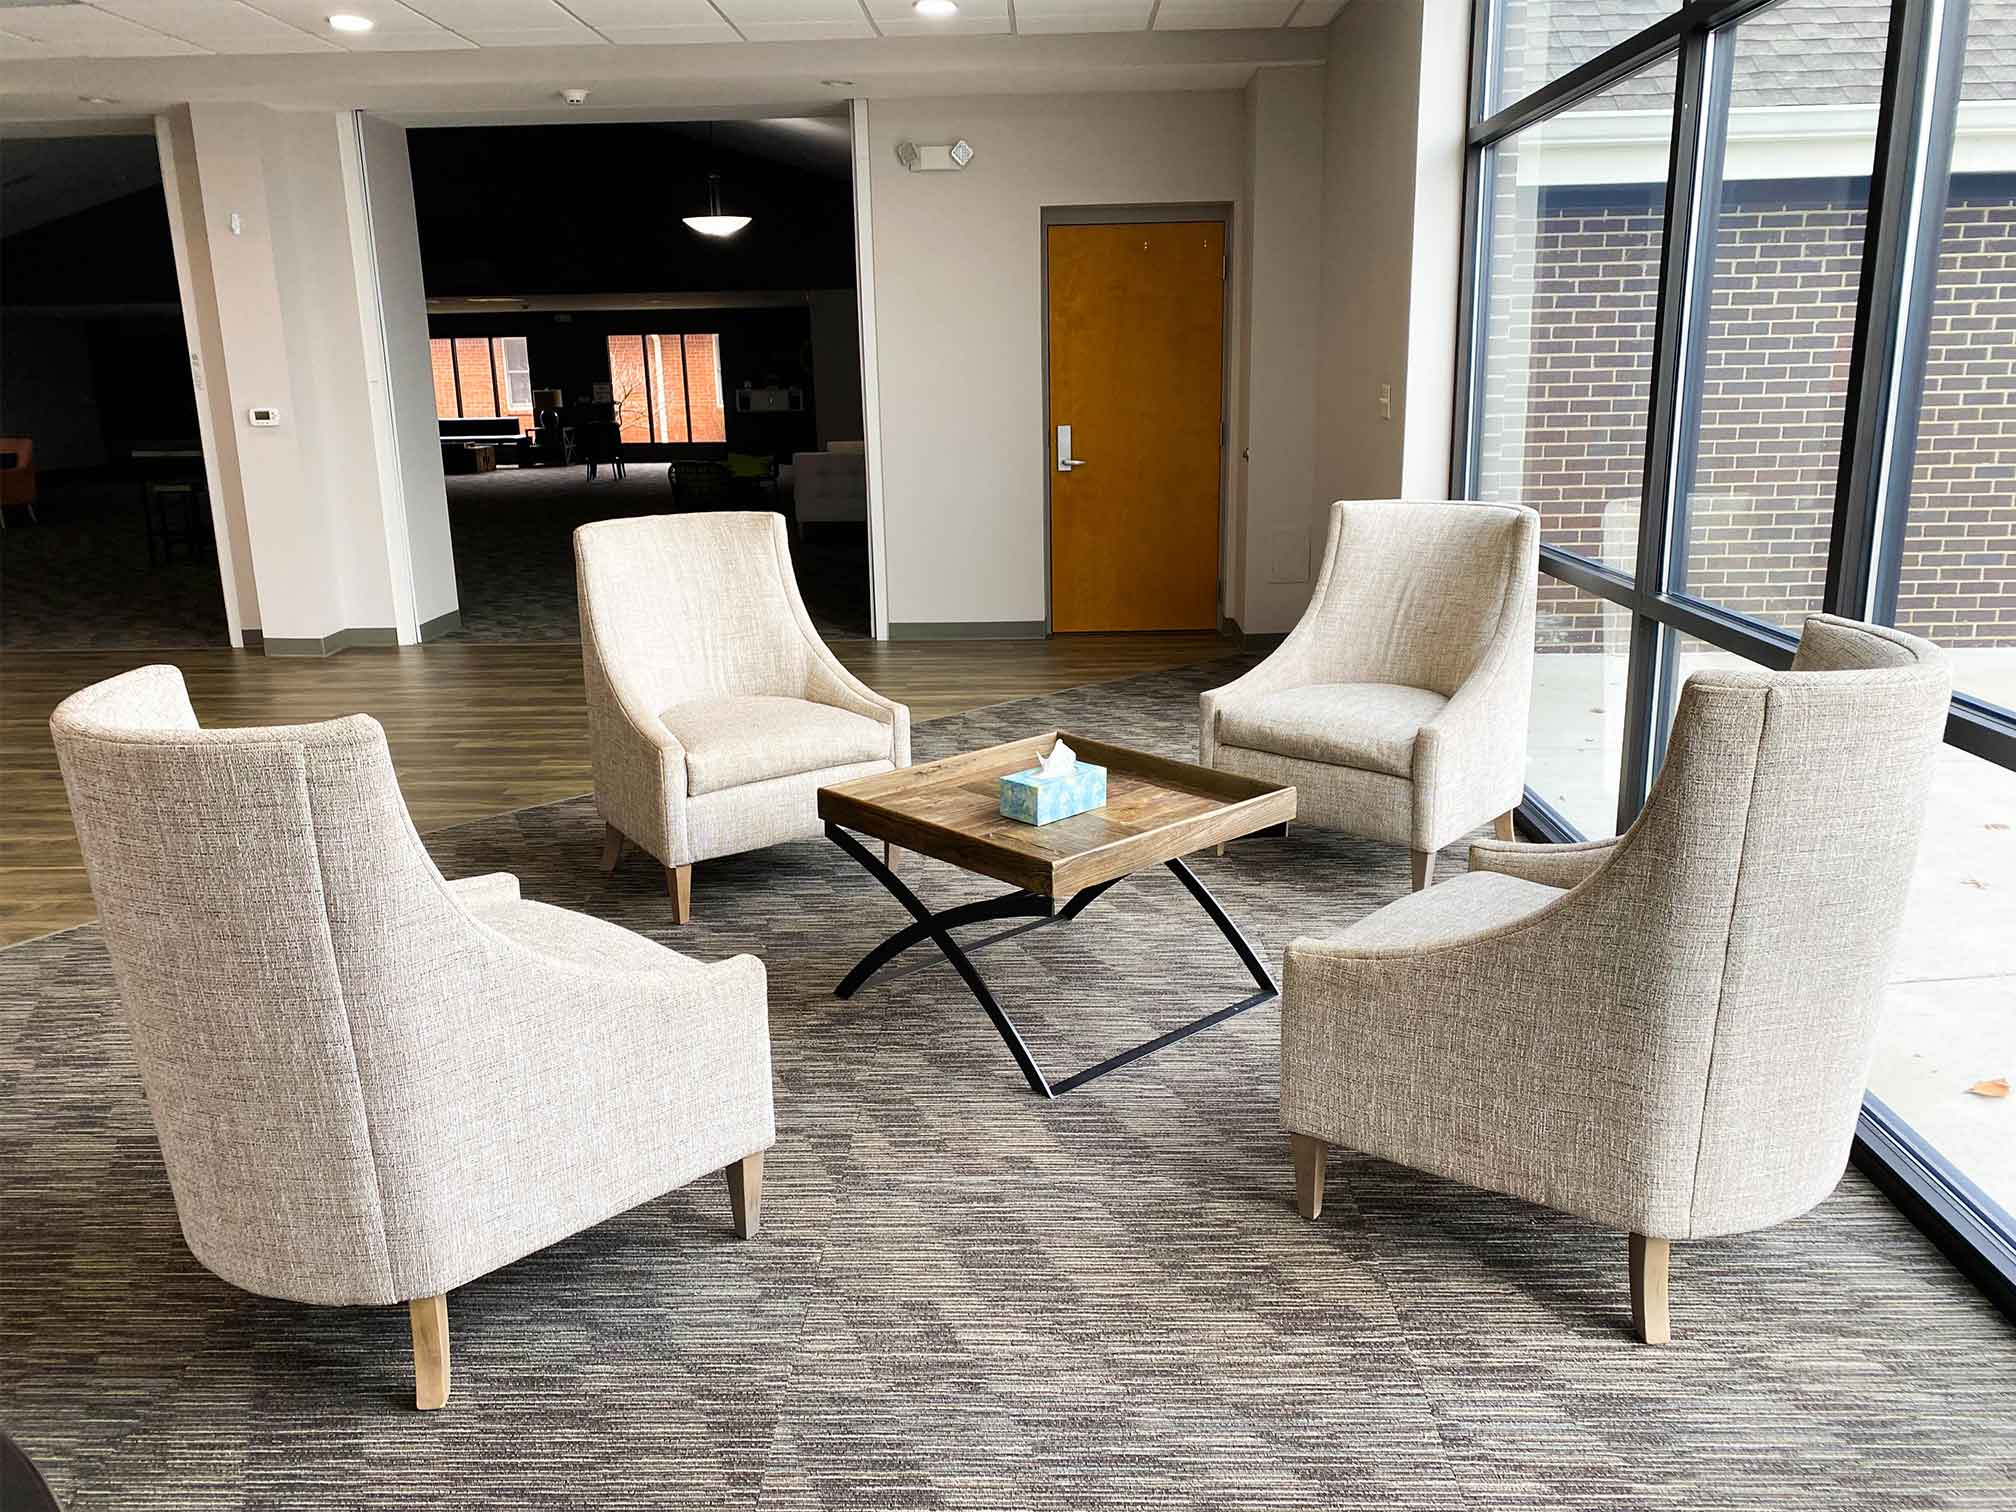 Four comfortable chairs in a circle by a big window in an airy room for counseling and therapy at New Hope Christian Church through ThrivePointe Counseling in Whitestown, IN 46075